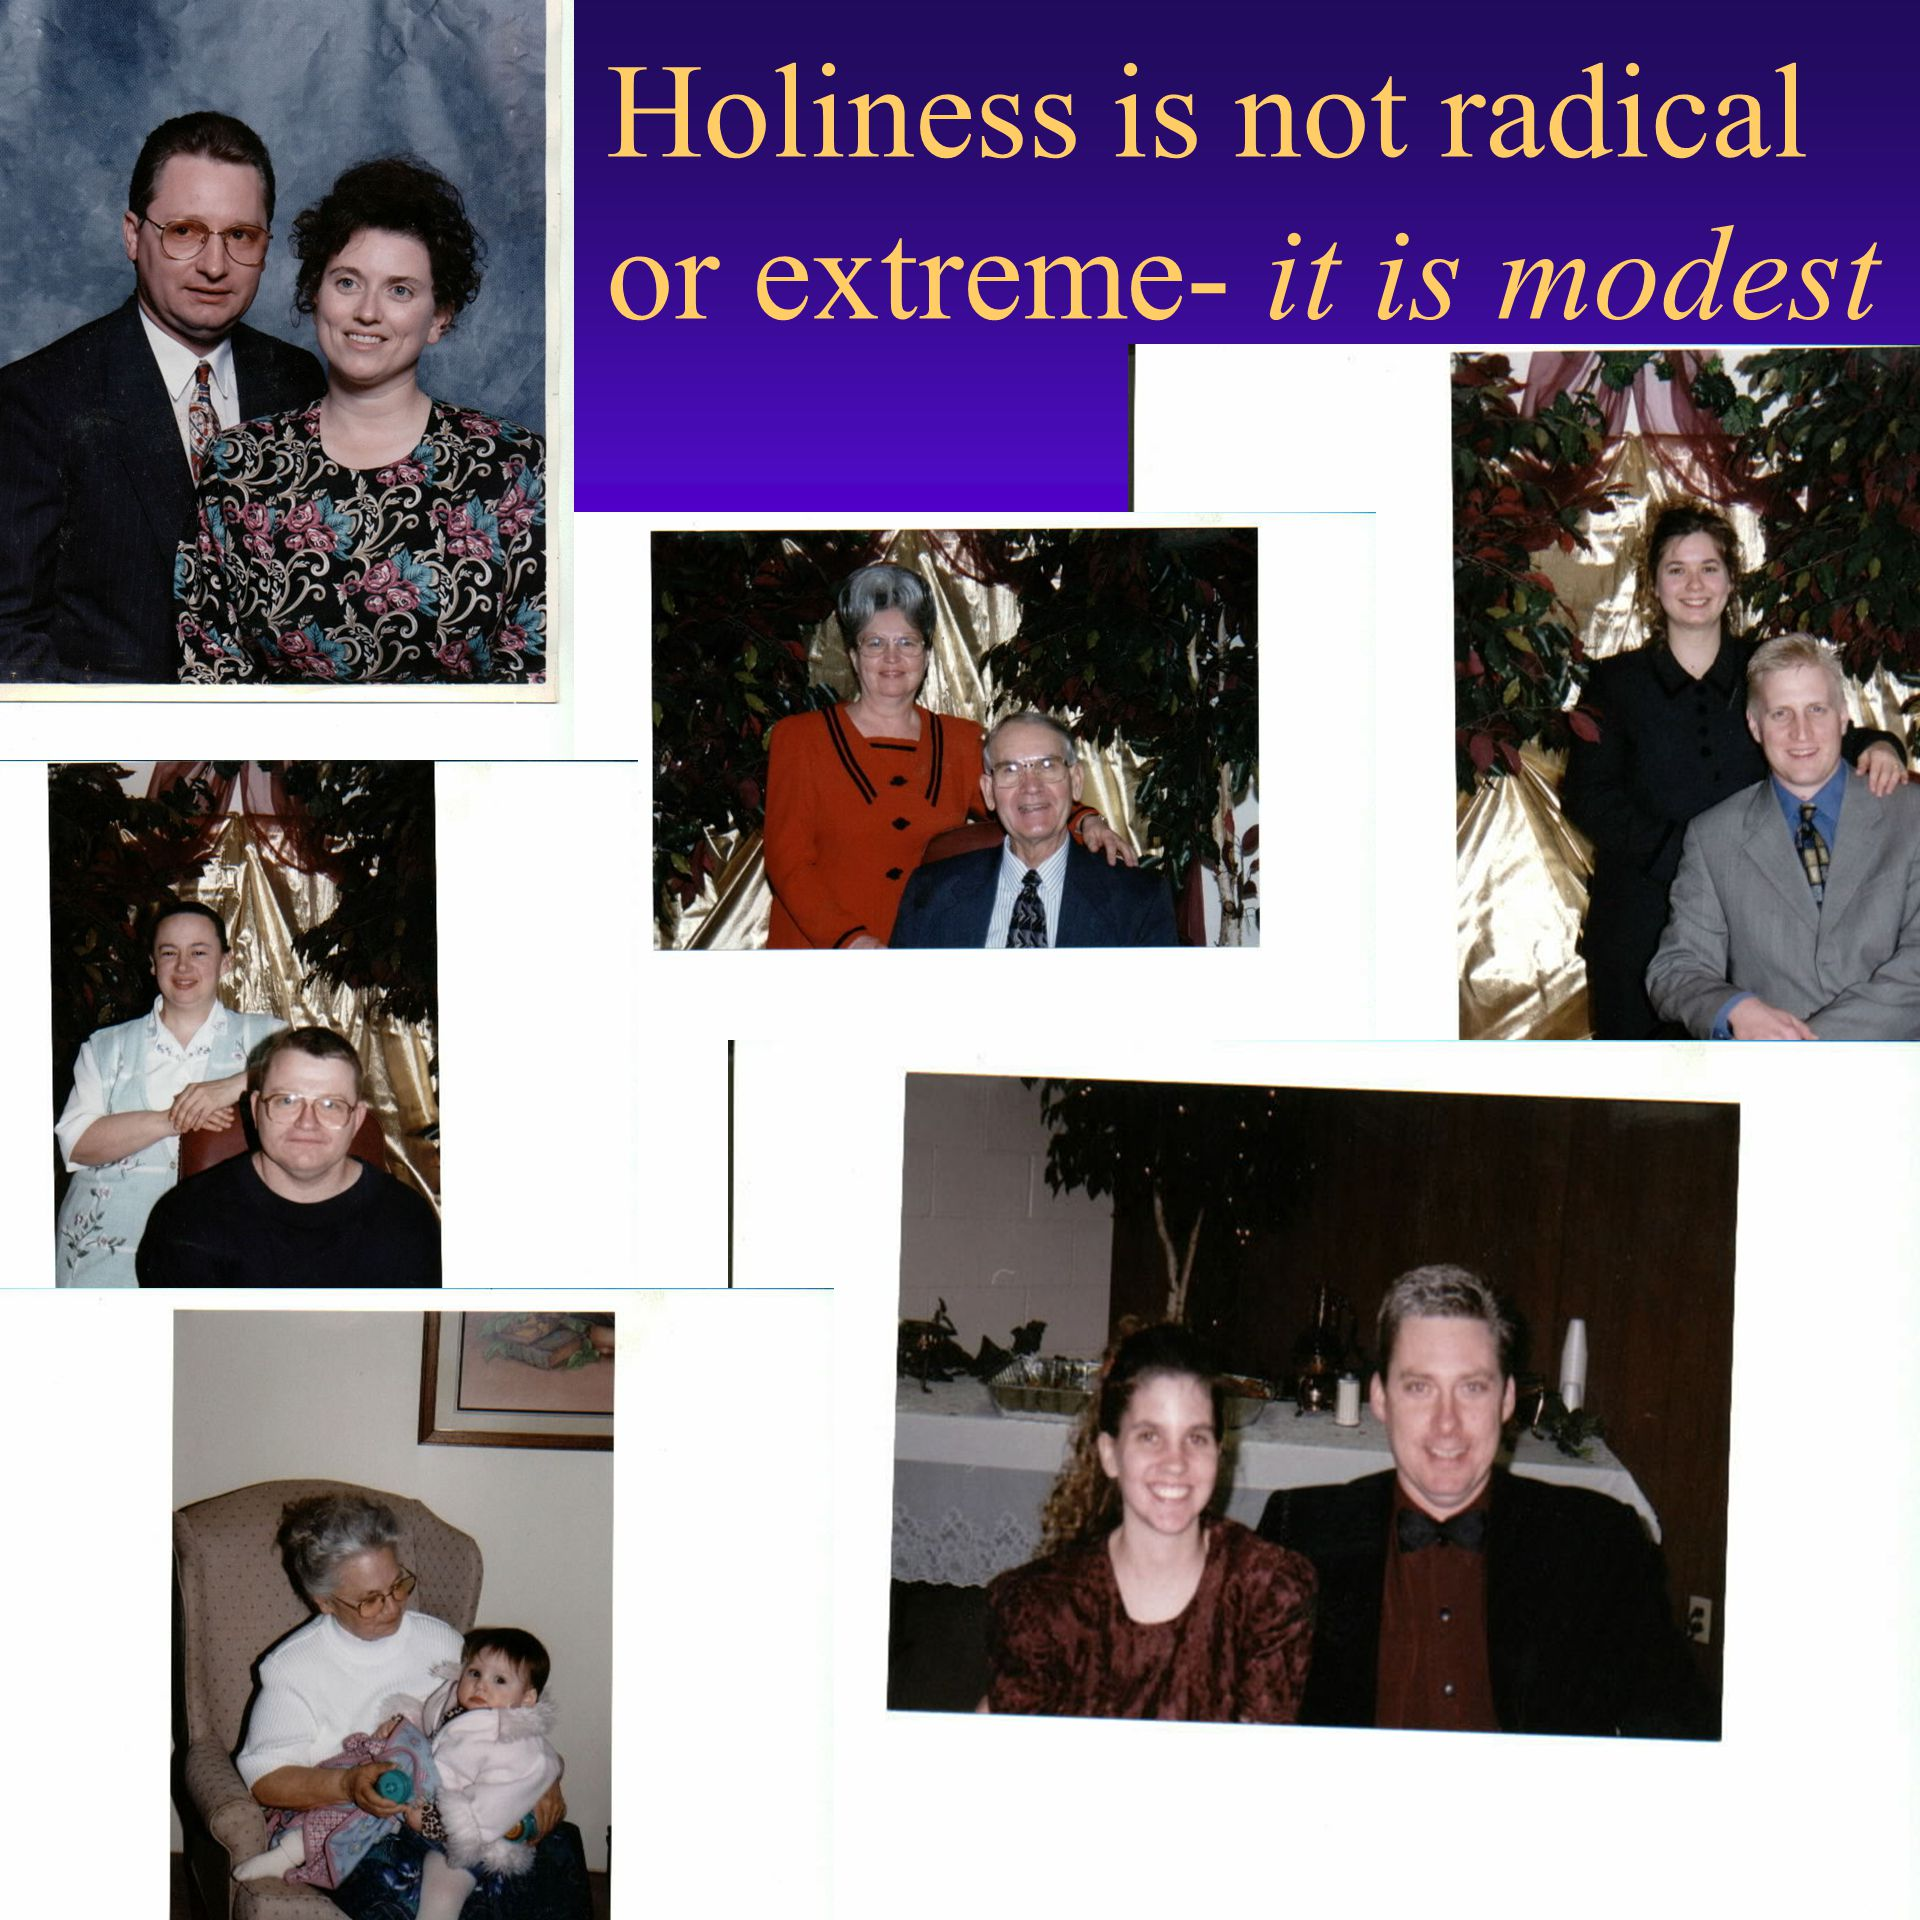 Holiness is not radical or extreme- it is modest